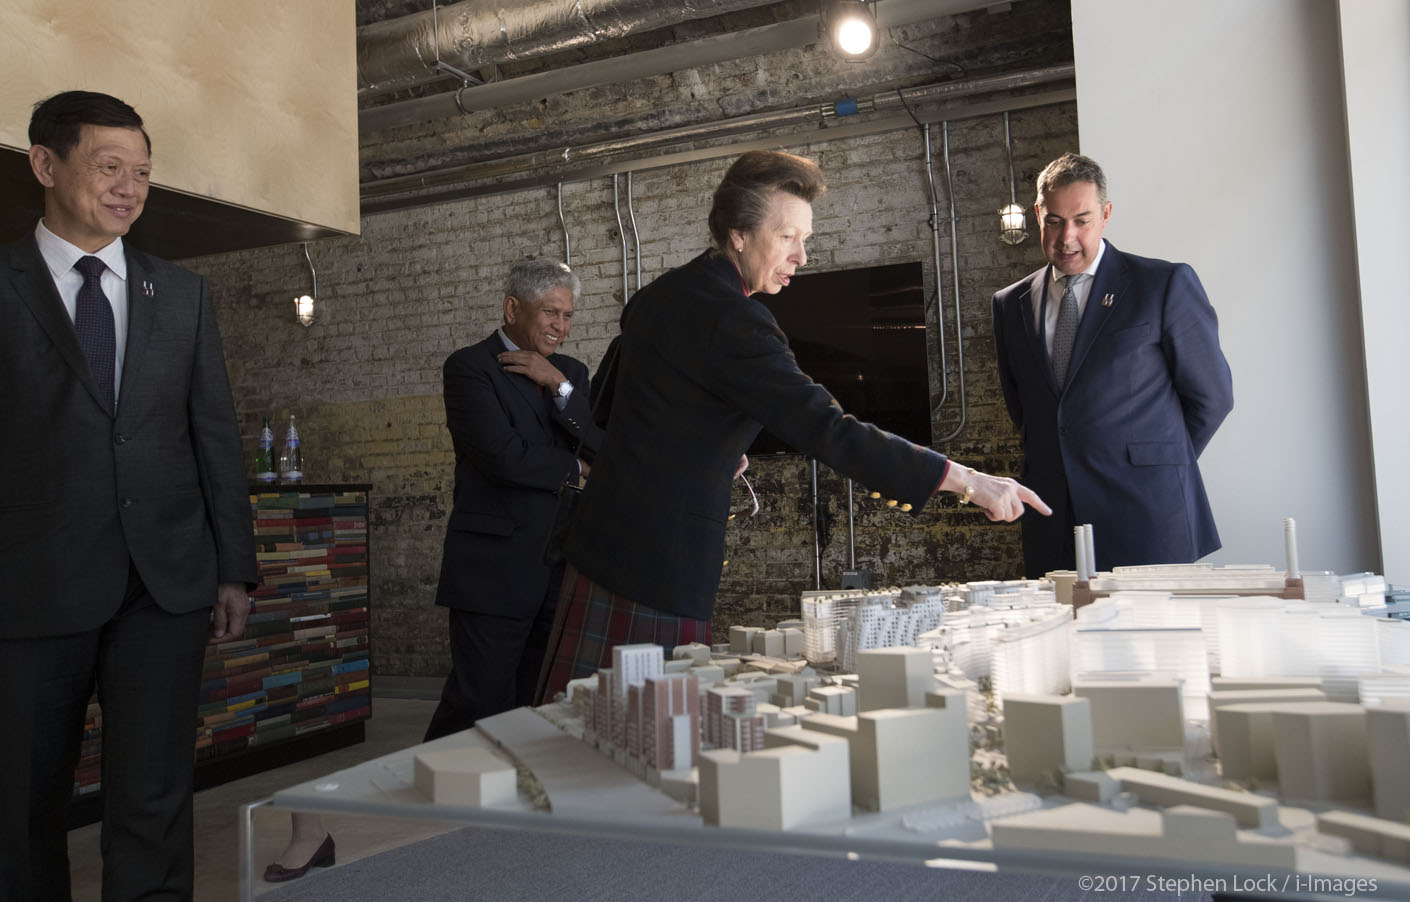 Princess Royal at Battersea Power Station